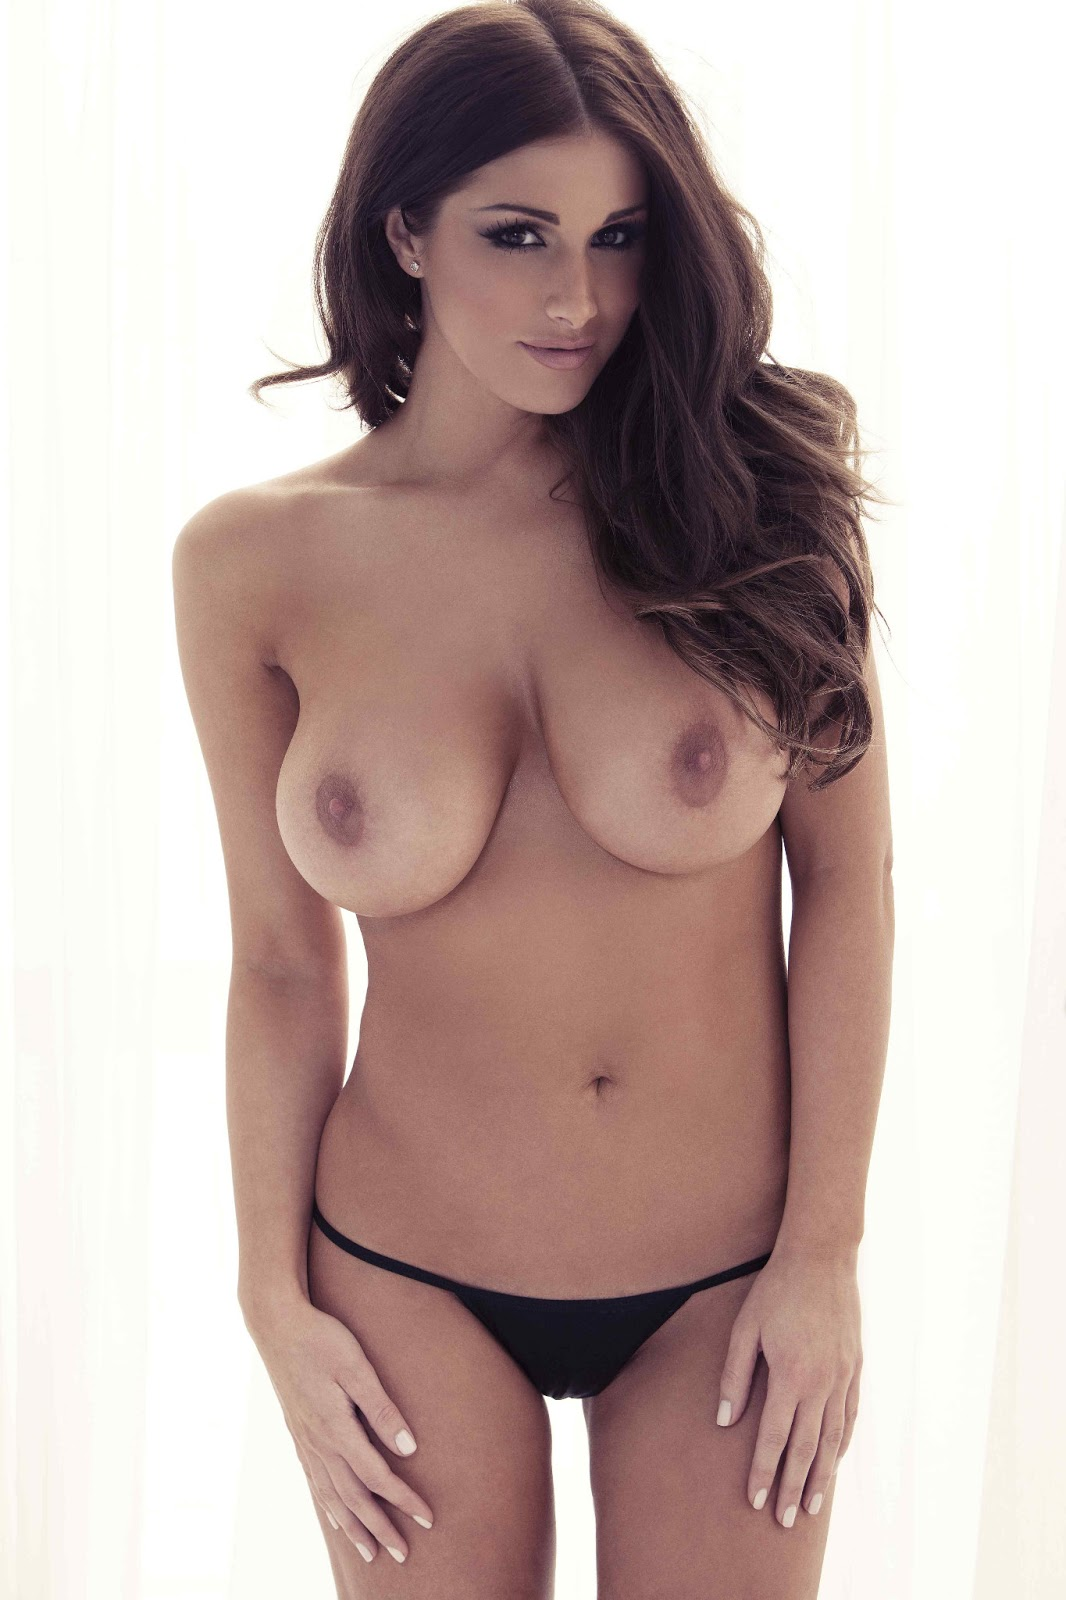 Thong Lucy Pinder Nude